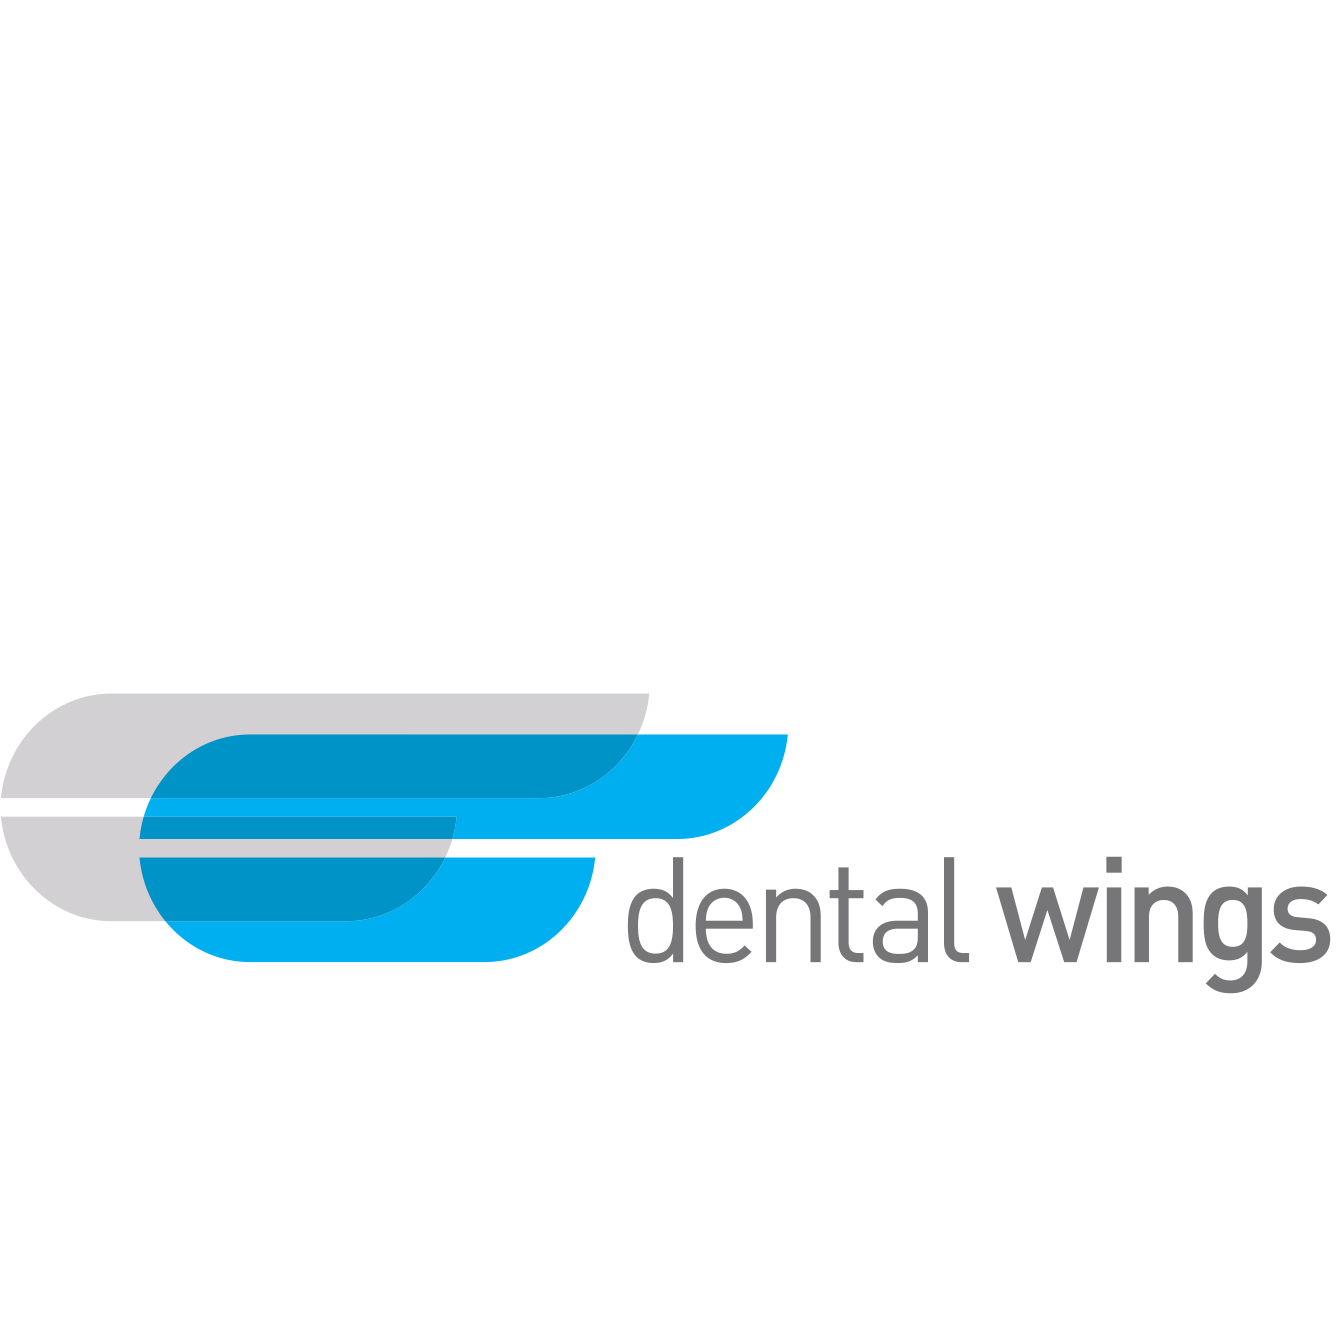 dental-wings.png